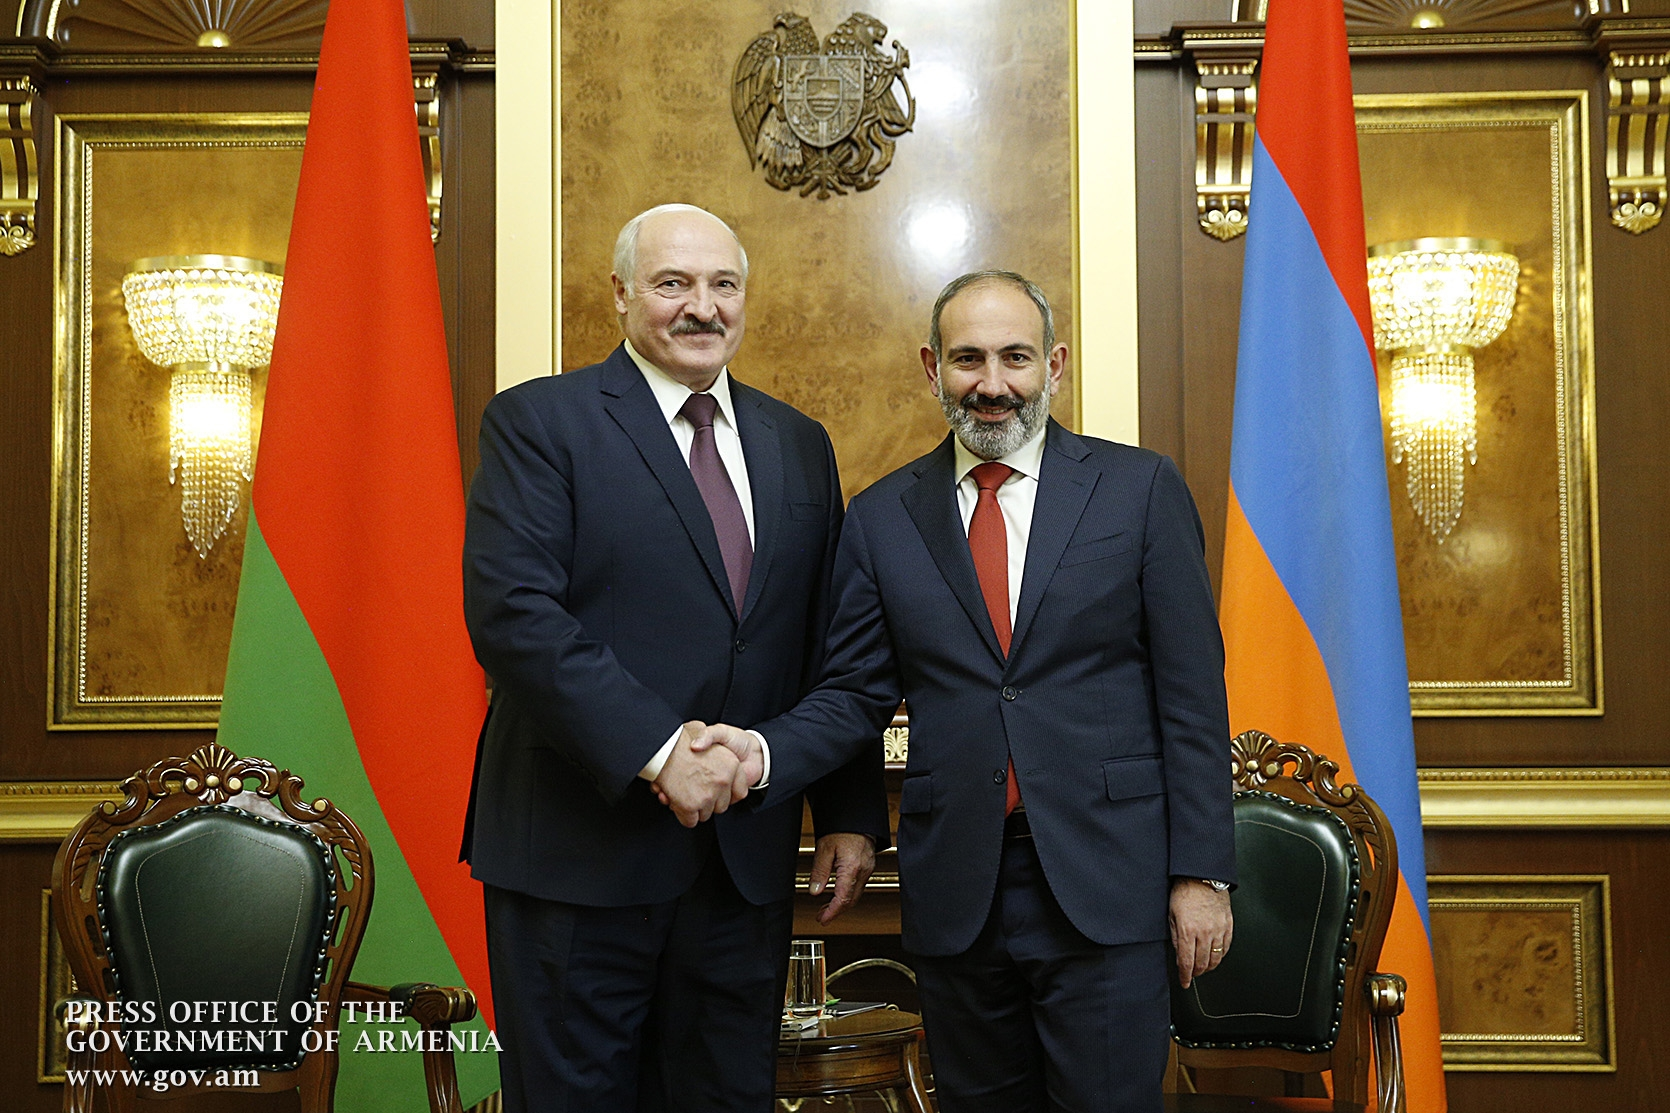 Lukashenko and Pashinyan